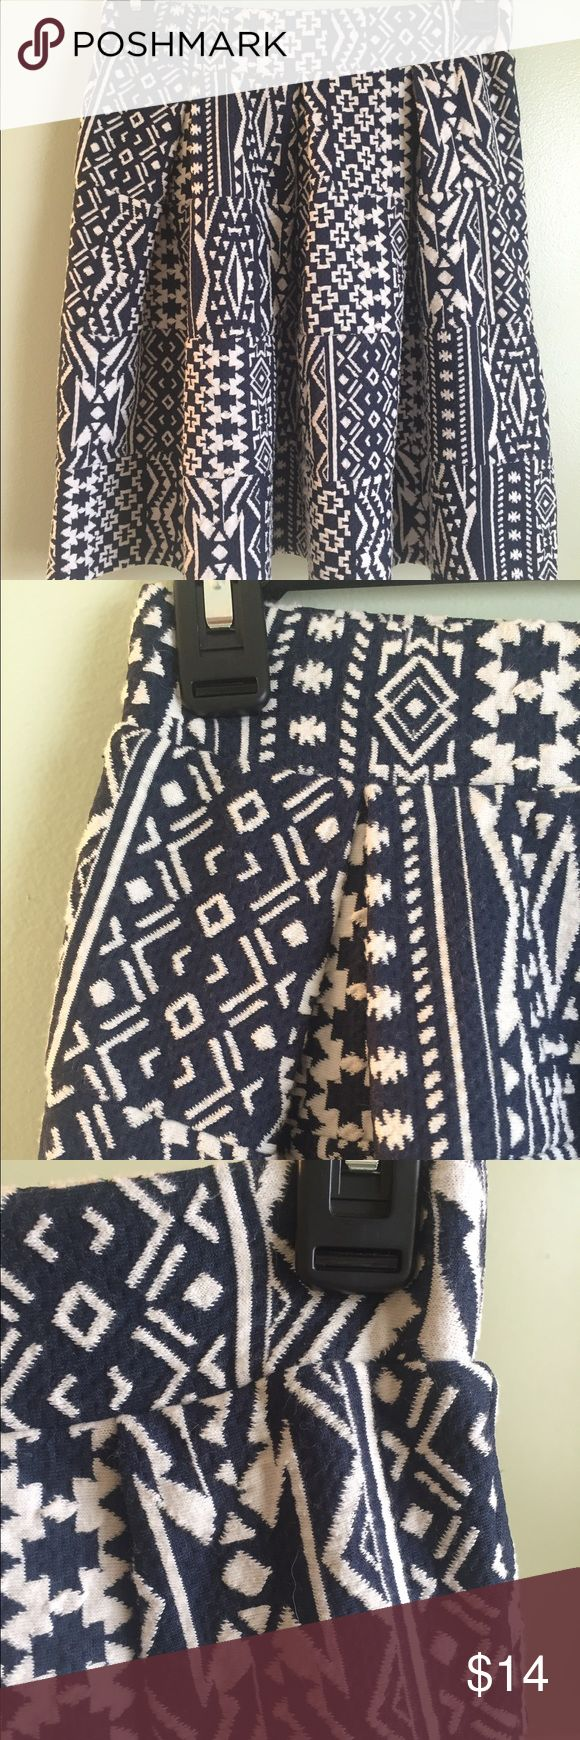 Xhiliration blue and white skirt.No tag/never worn XS blue and white skirt. Thick material (perfect to pair with tights). Can be pulled up to wear as a high waisted skirt or worn at hip level. Received as a Christmas present but have never worn it. Xhilaration Skirts